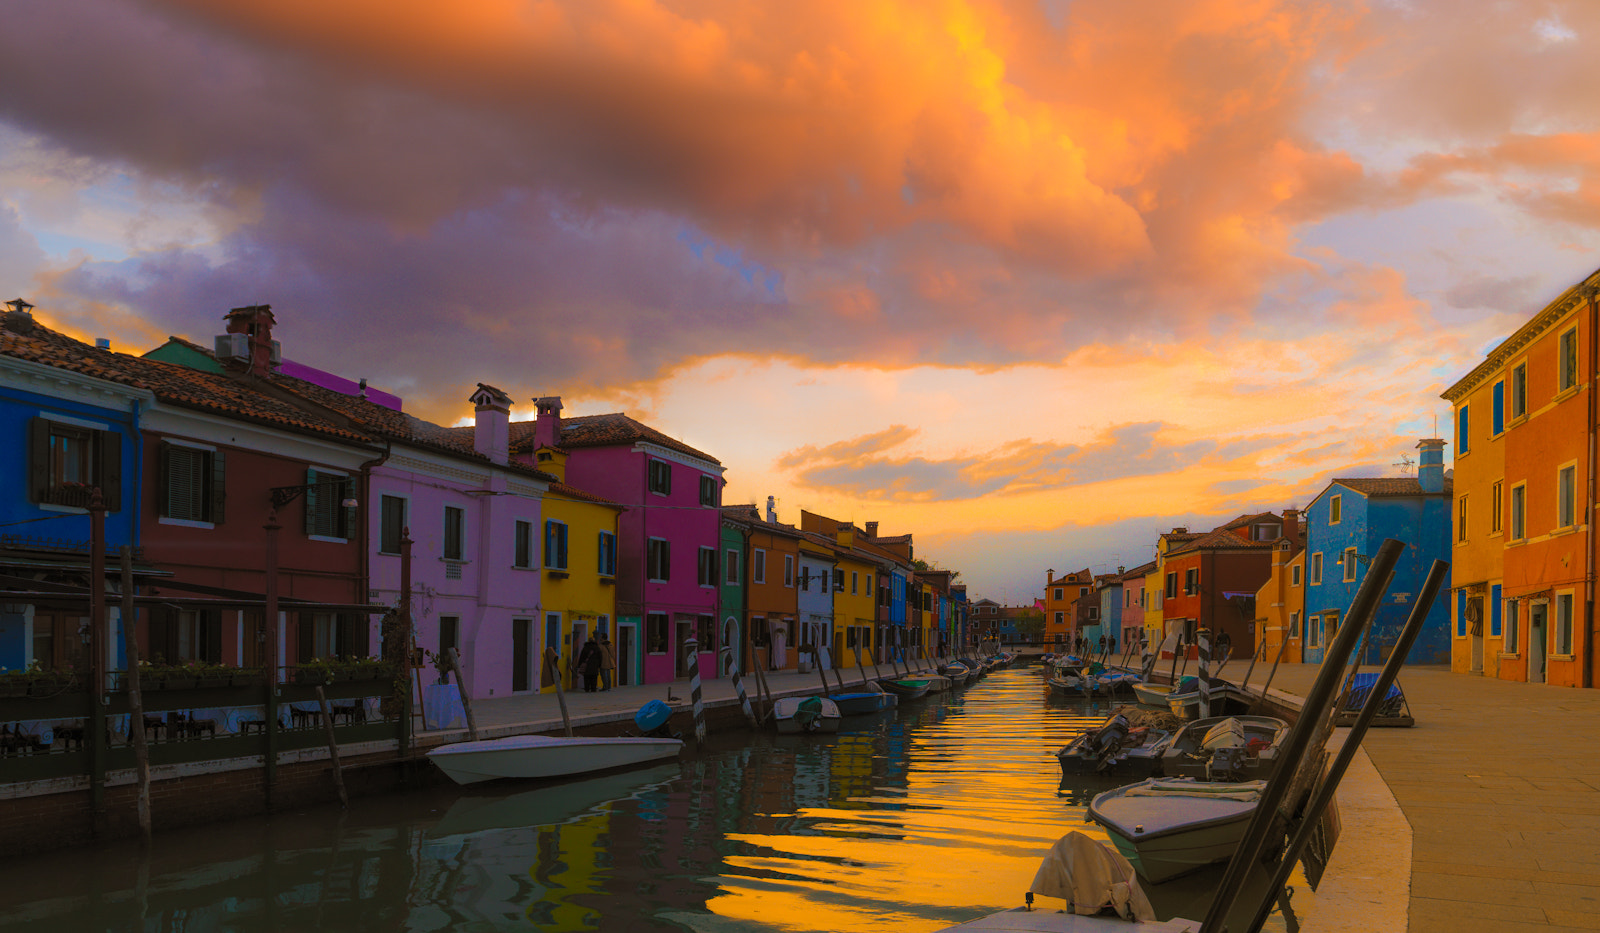 Photograph Burano sunset #1 by Richard Desmarais on 500px